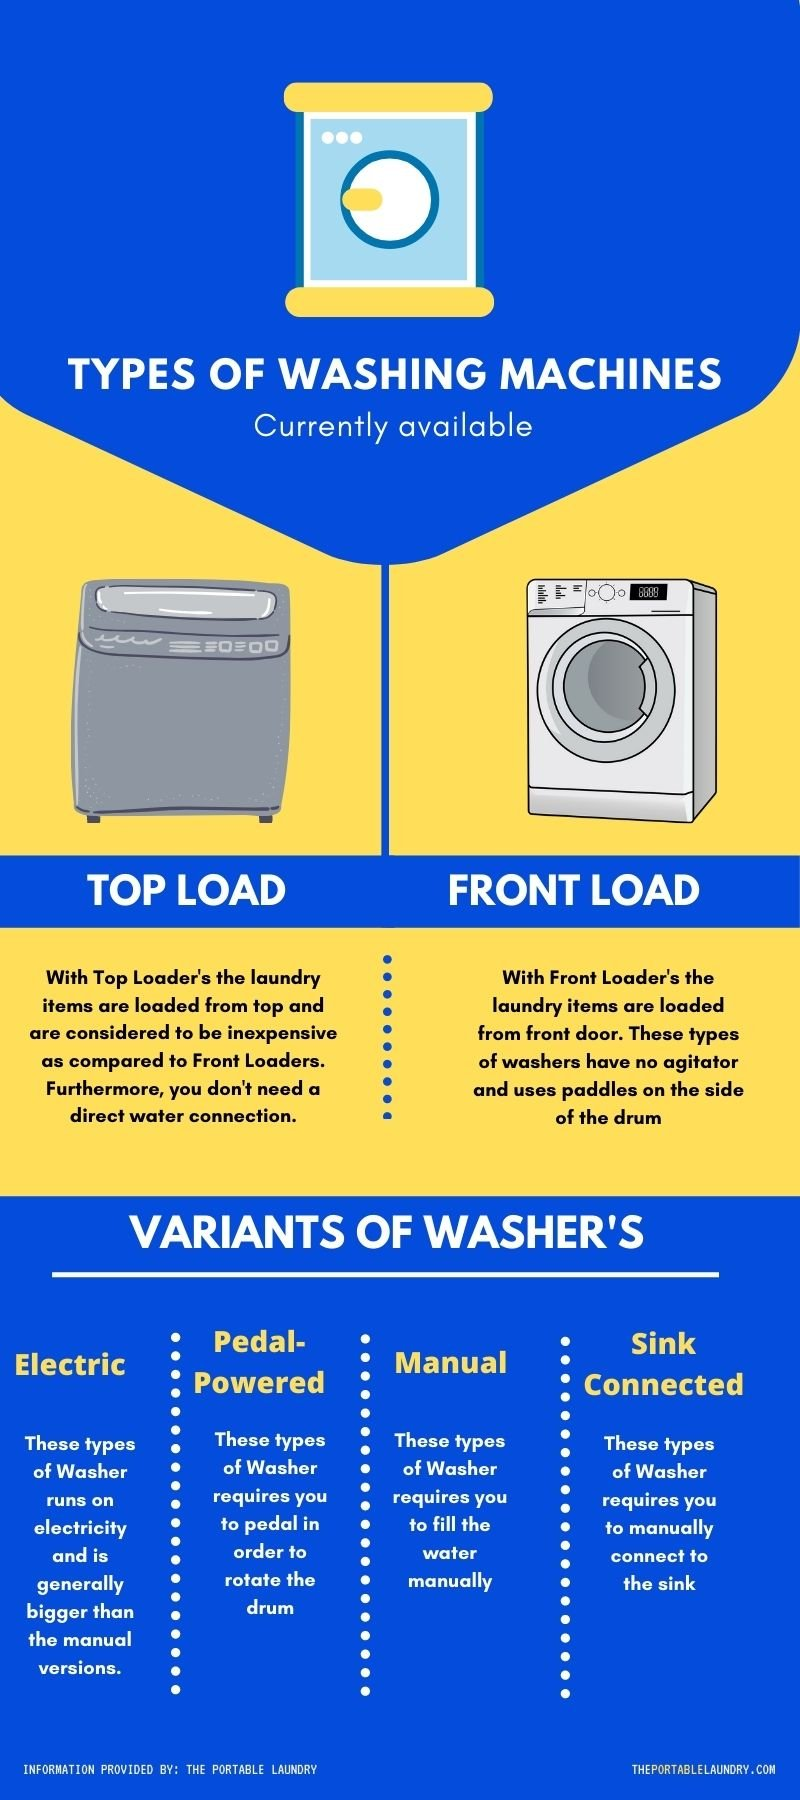 Types of portable Washing Machines available